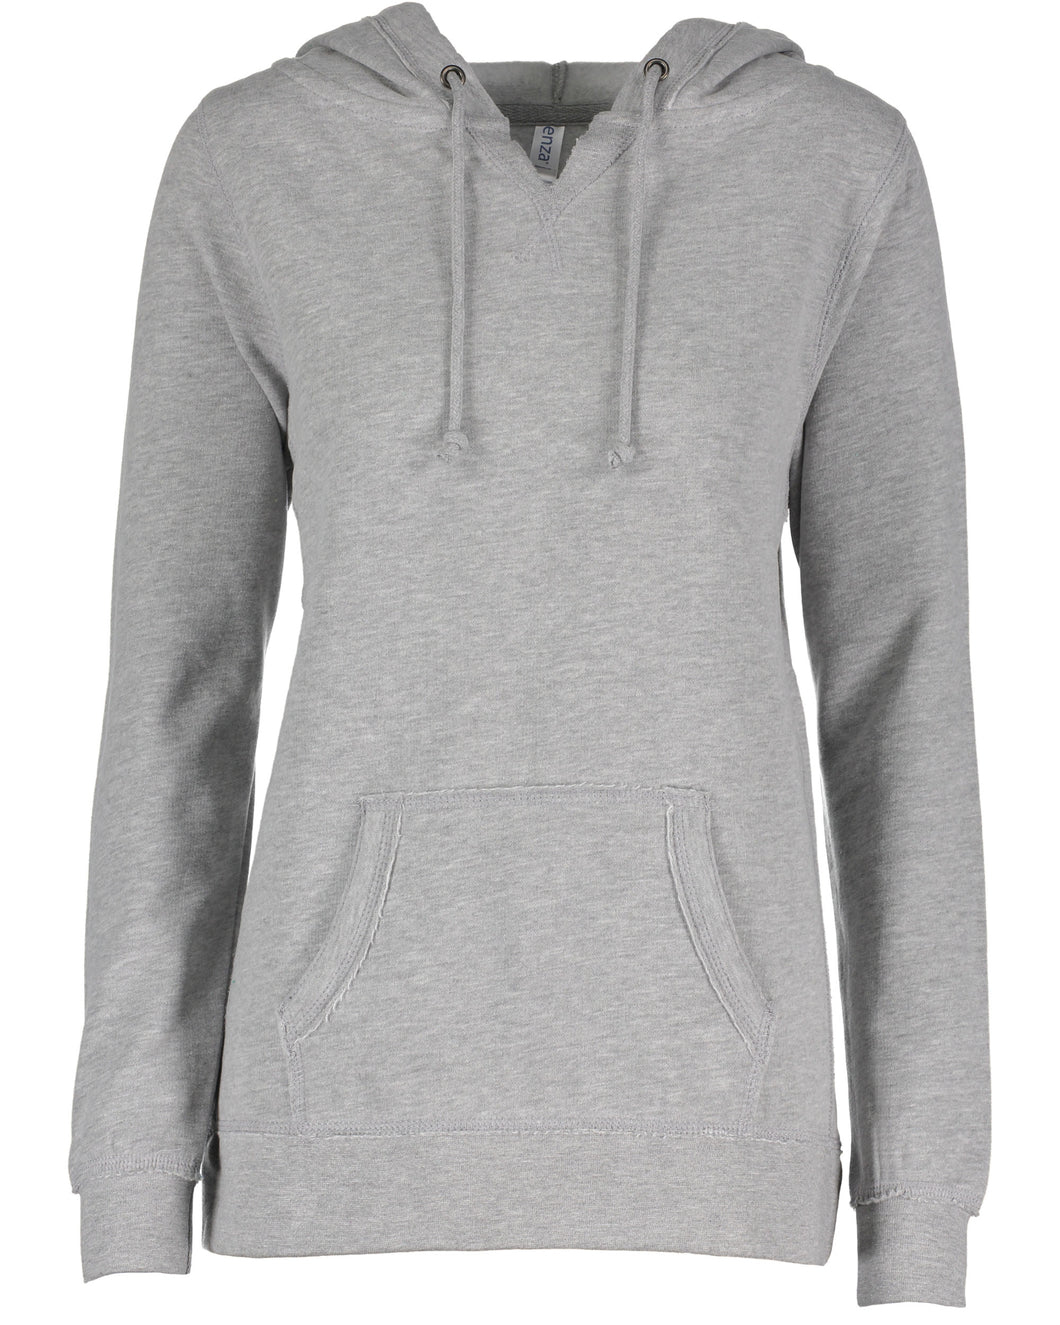 LL Loon Lake Words Only Enza Ladies V-Notch Fleece Pullover Hood